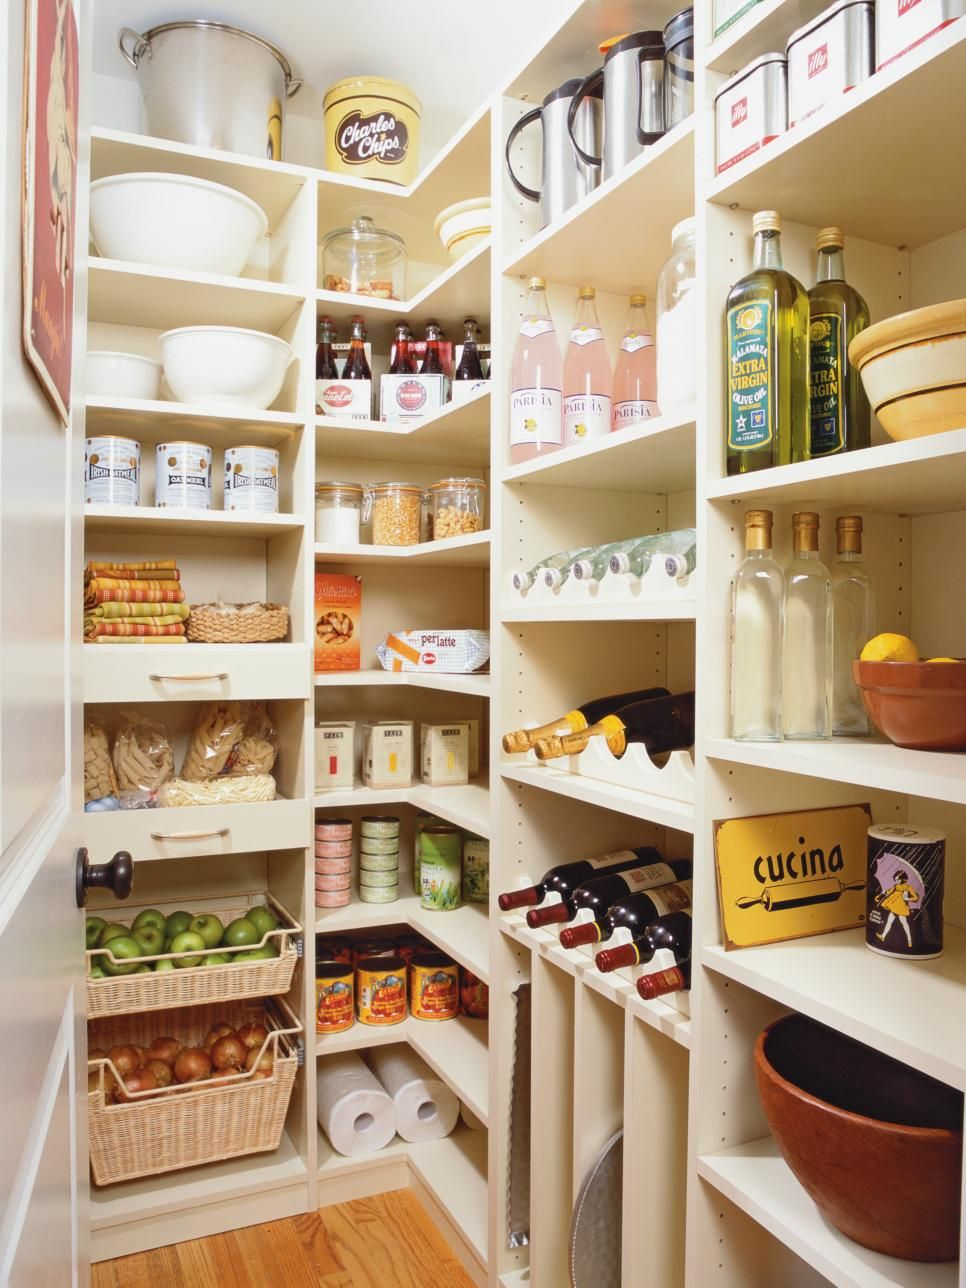 Ideas for kitchen organization - 12 Kitchen Organization Tips From The Pros